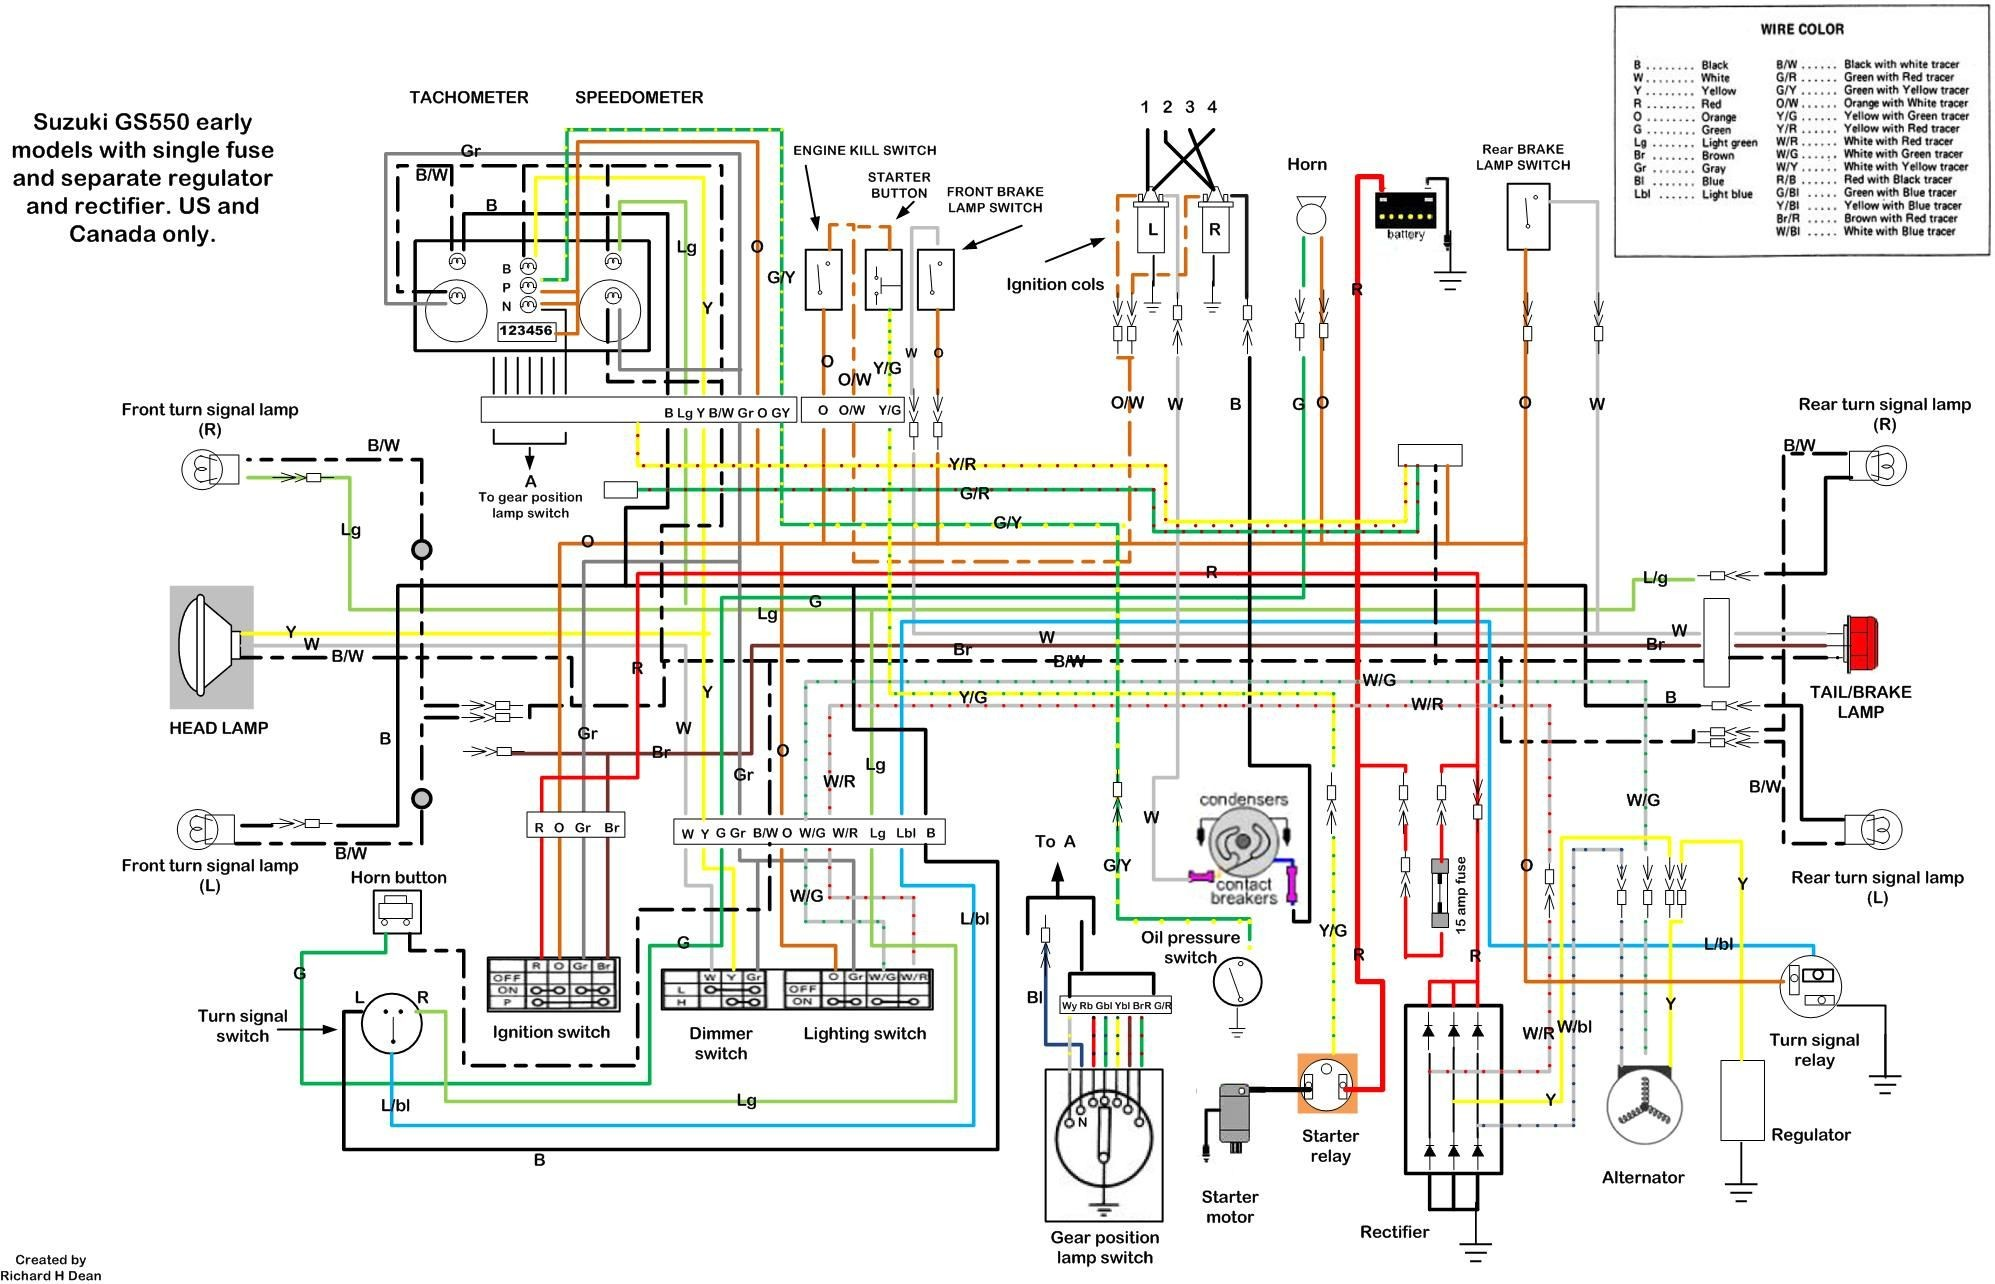 Suzuki gp100 wiring diagram circuit diagram symbols road star wiring diagram on electric quad wiring diagram for suzuki rh iboarded co suzuki electrical asfbconference2016 Image collections